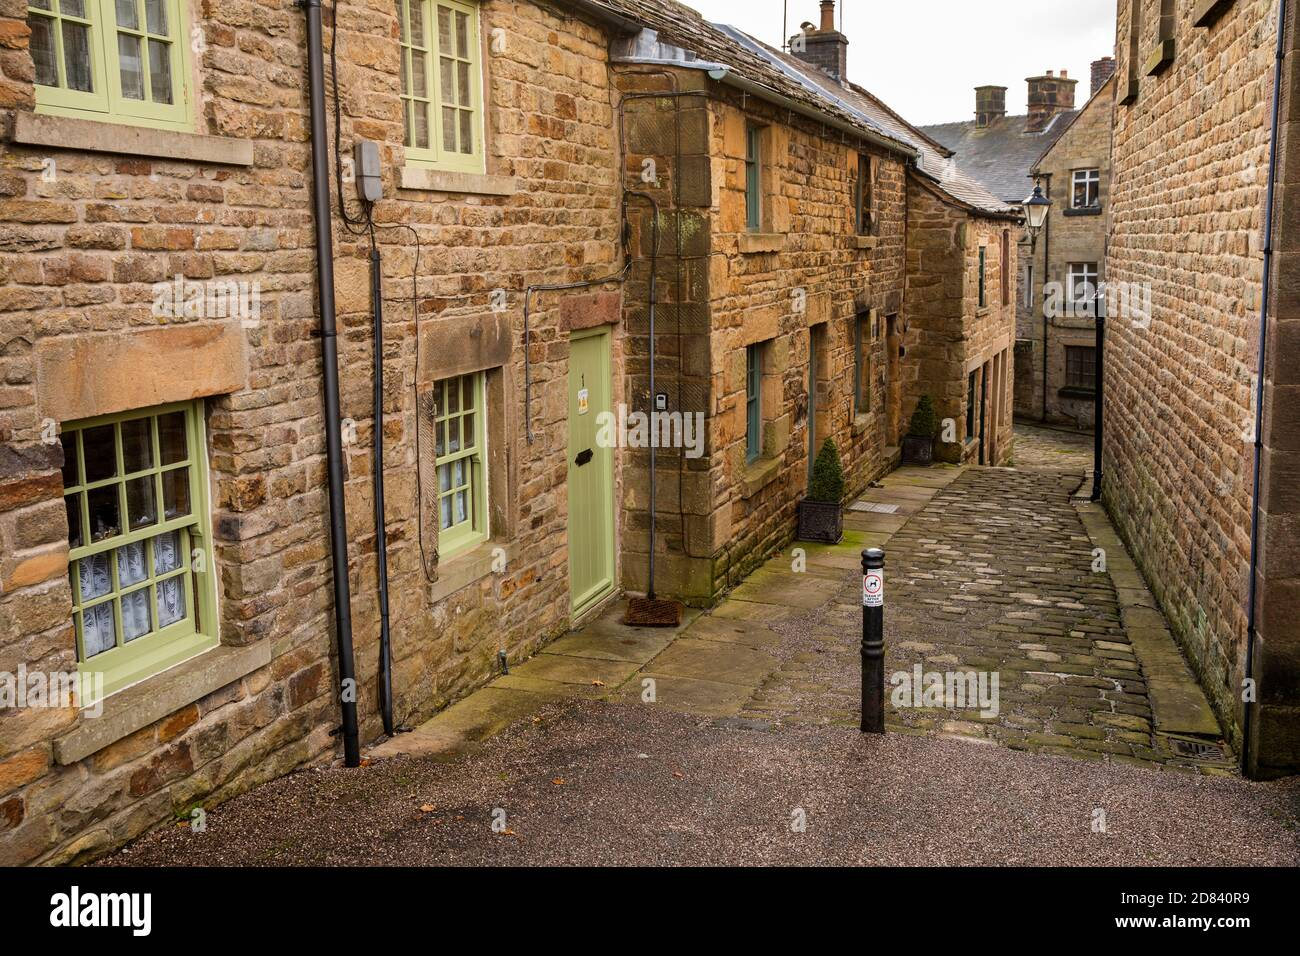 UK, England, Staffordshire, Moorlands, Longnor, Chapel Lane, stone built cottages in no through road Stock Photo